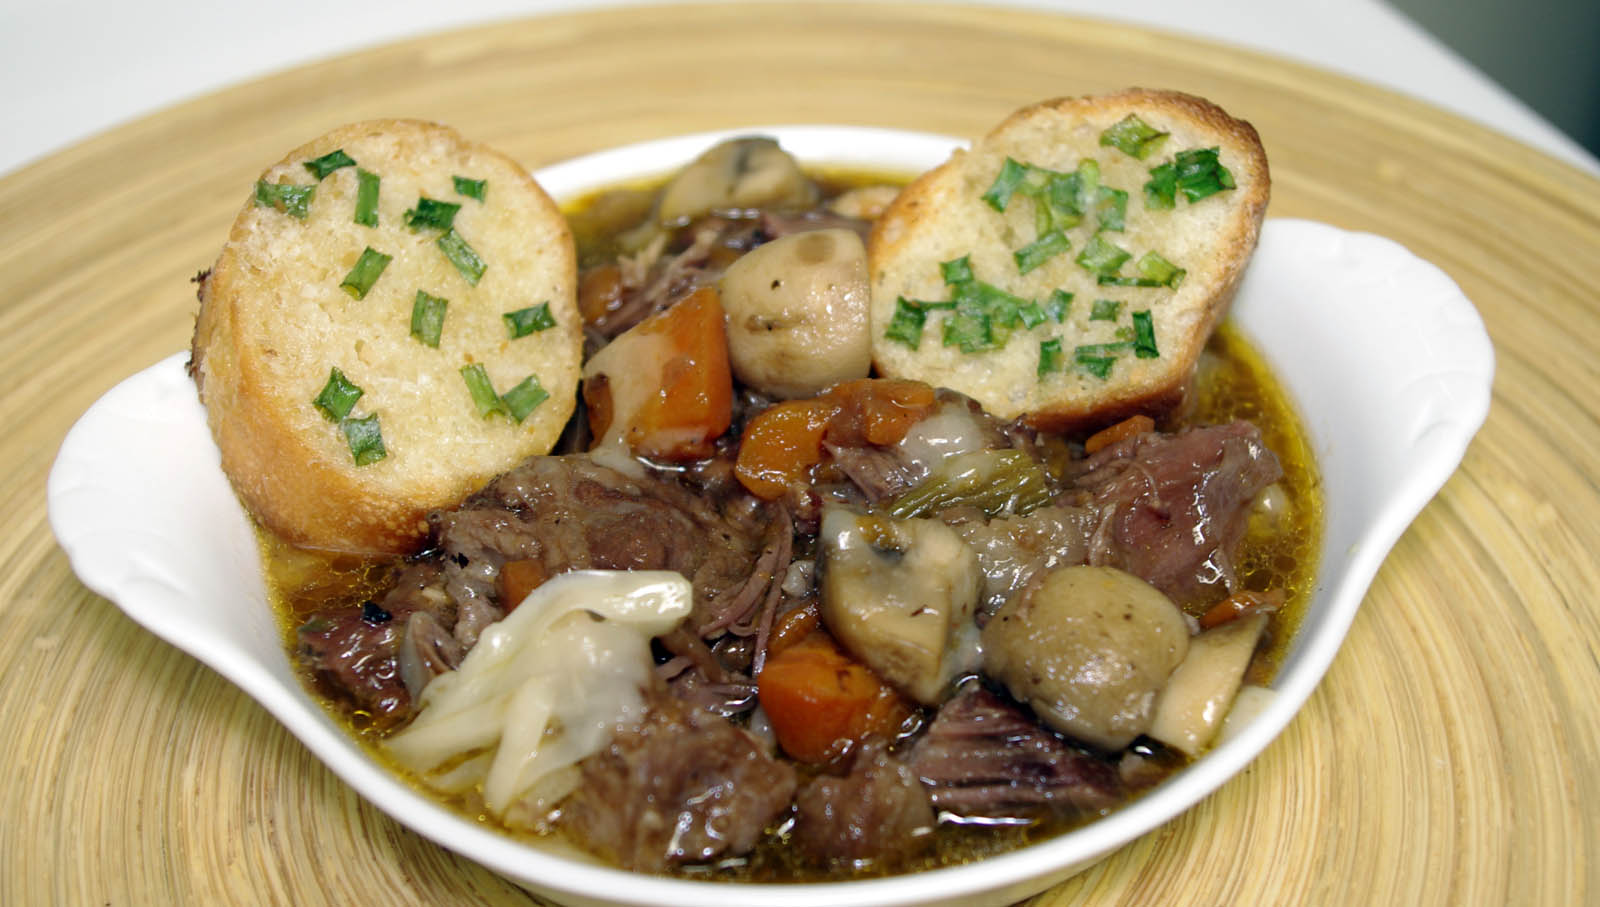 short rib bourguignon soup with horseradish-chive bread to sop up ...